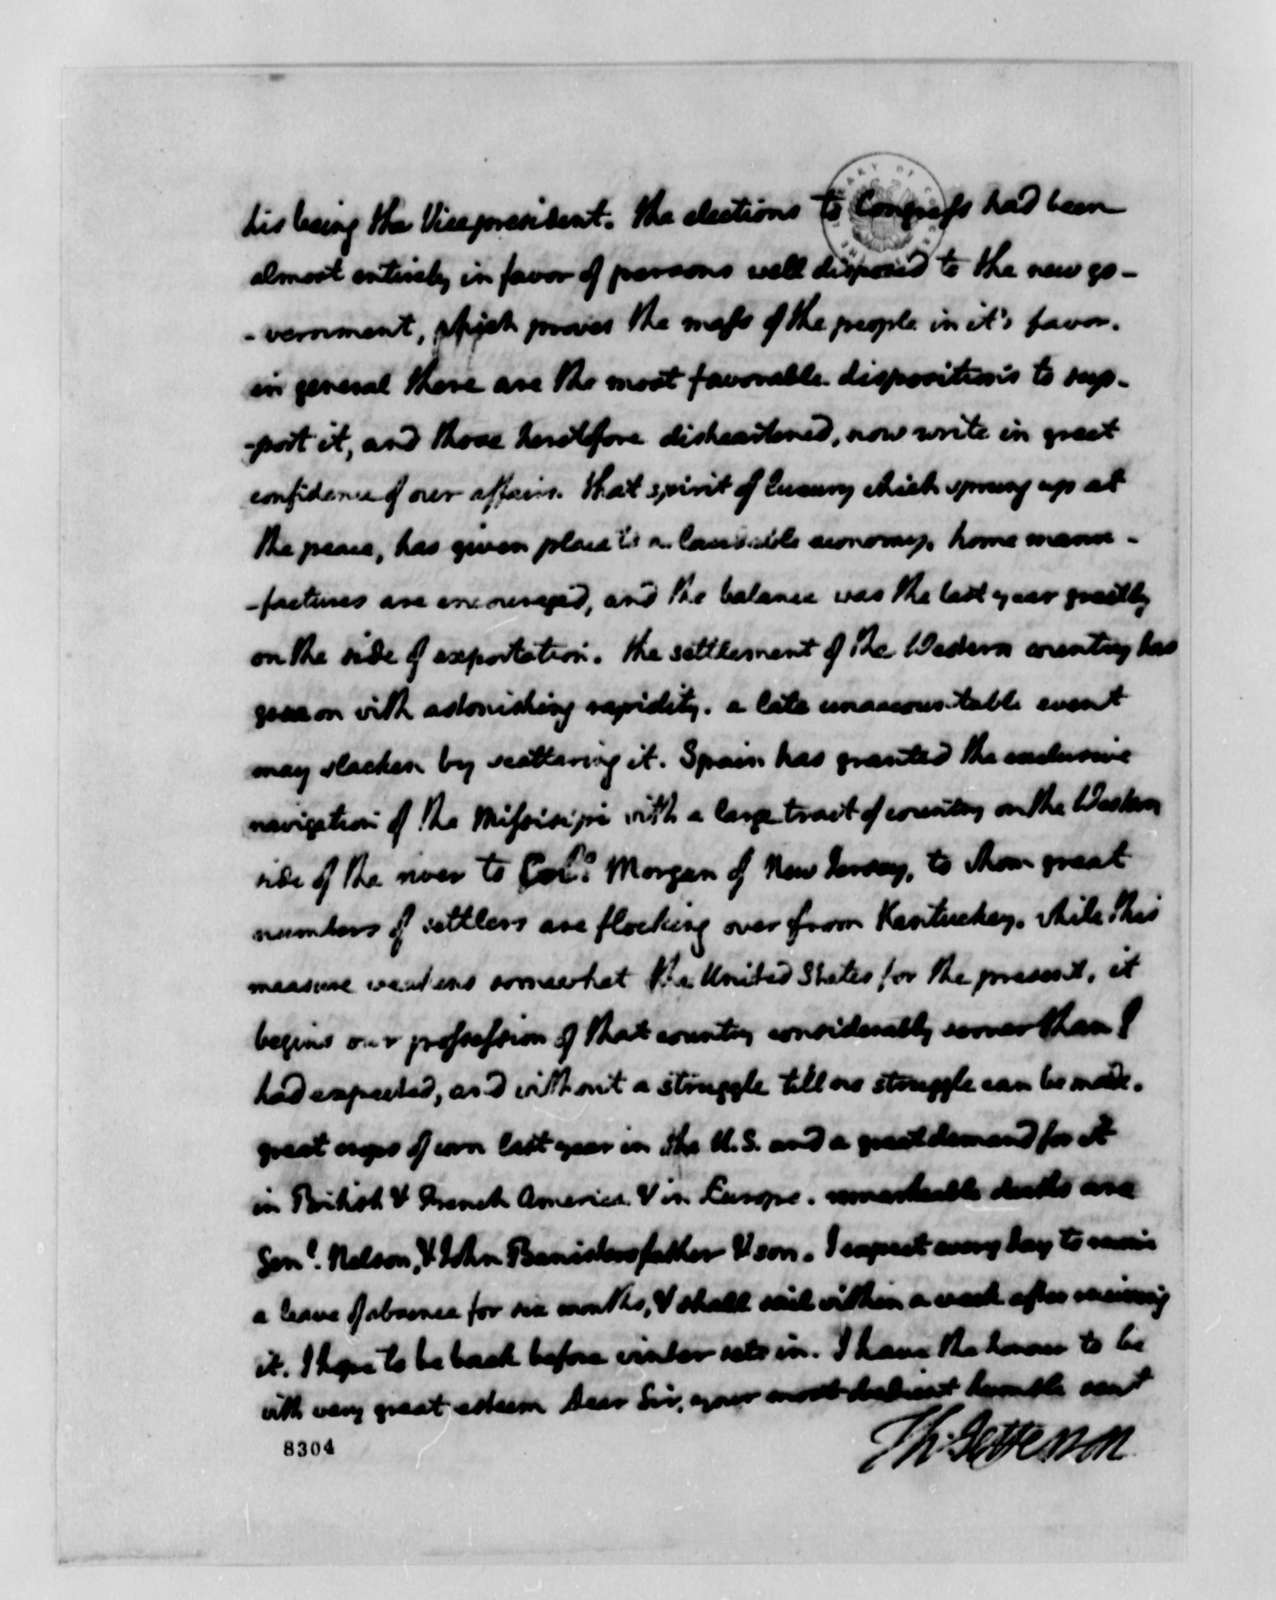 Thomas Jefferson to Lewis Littlepage, May 8, 1789